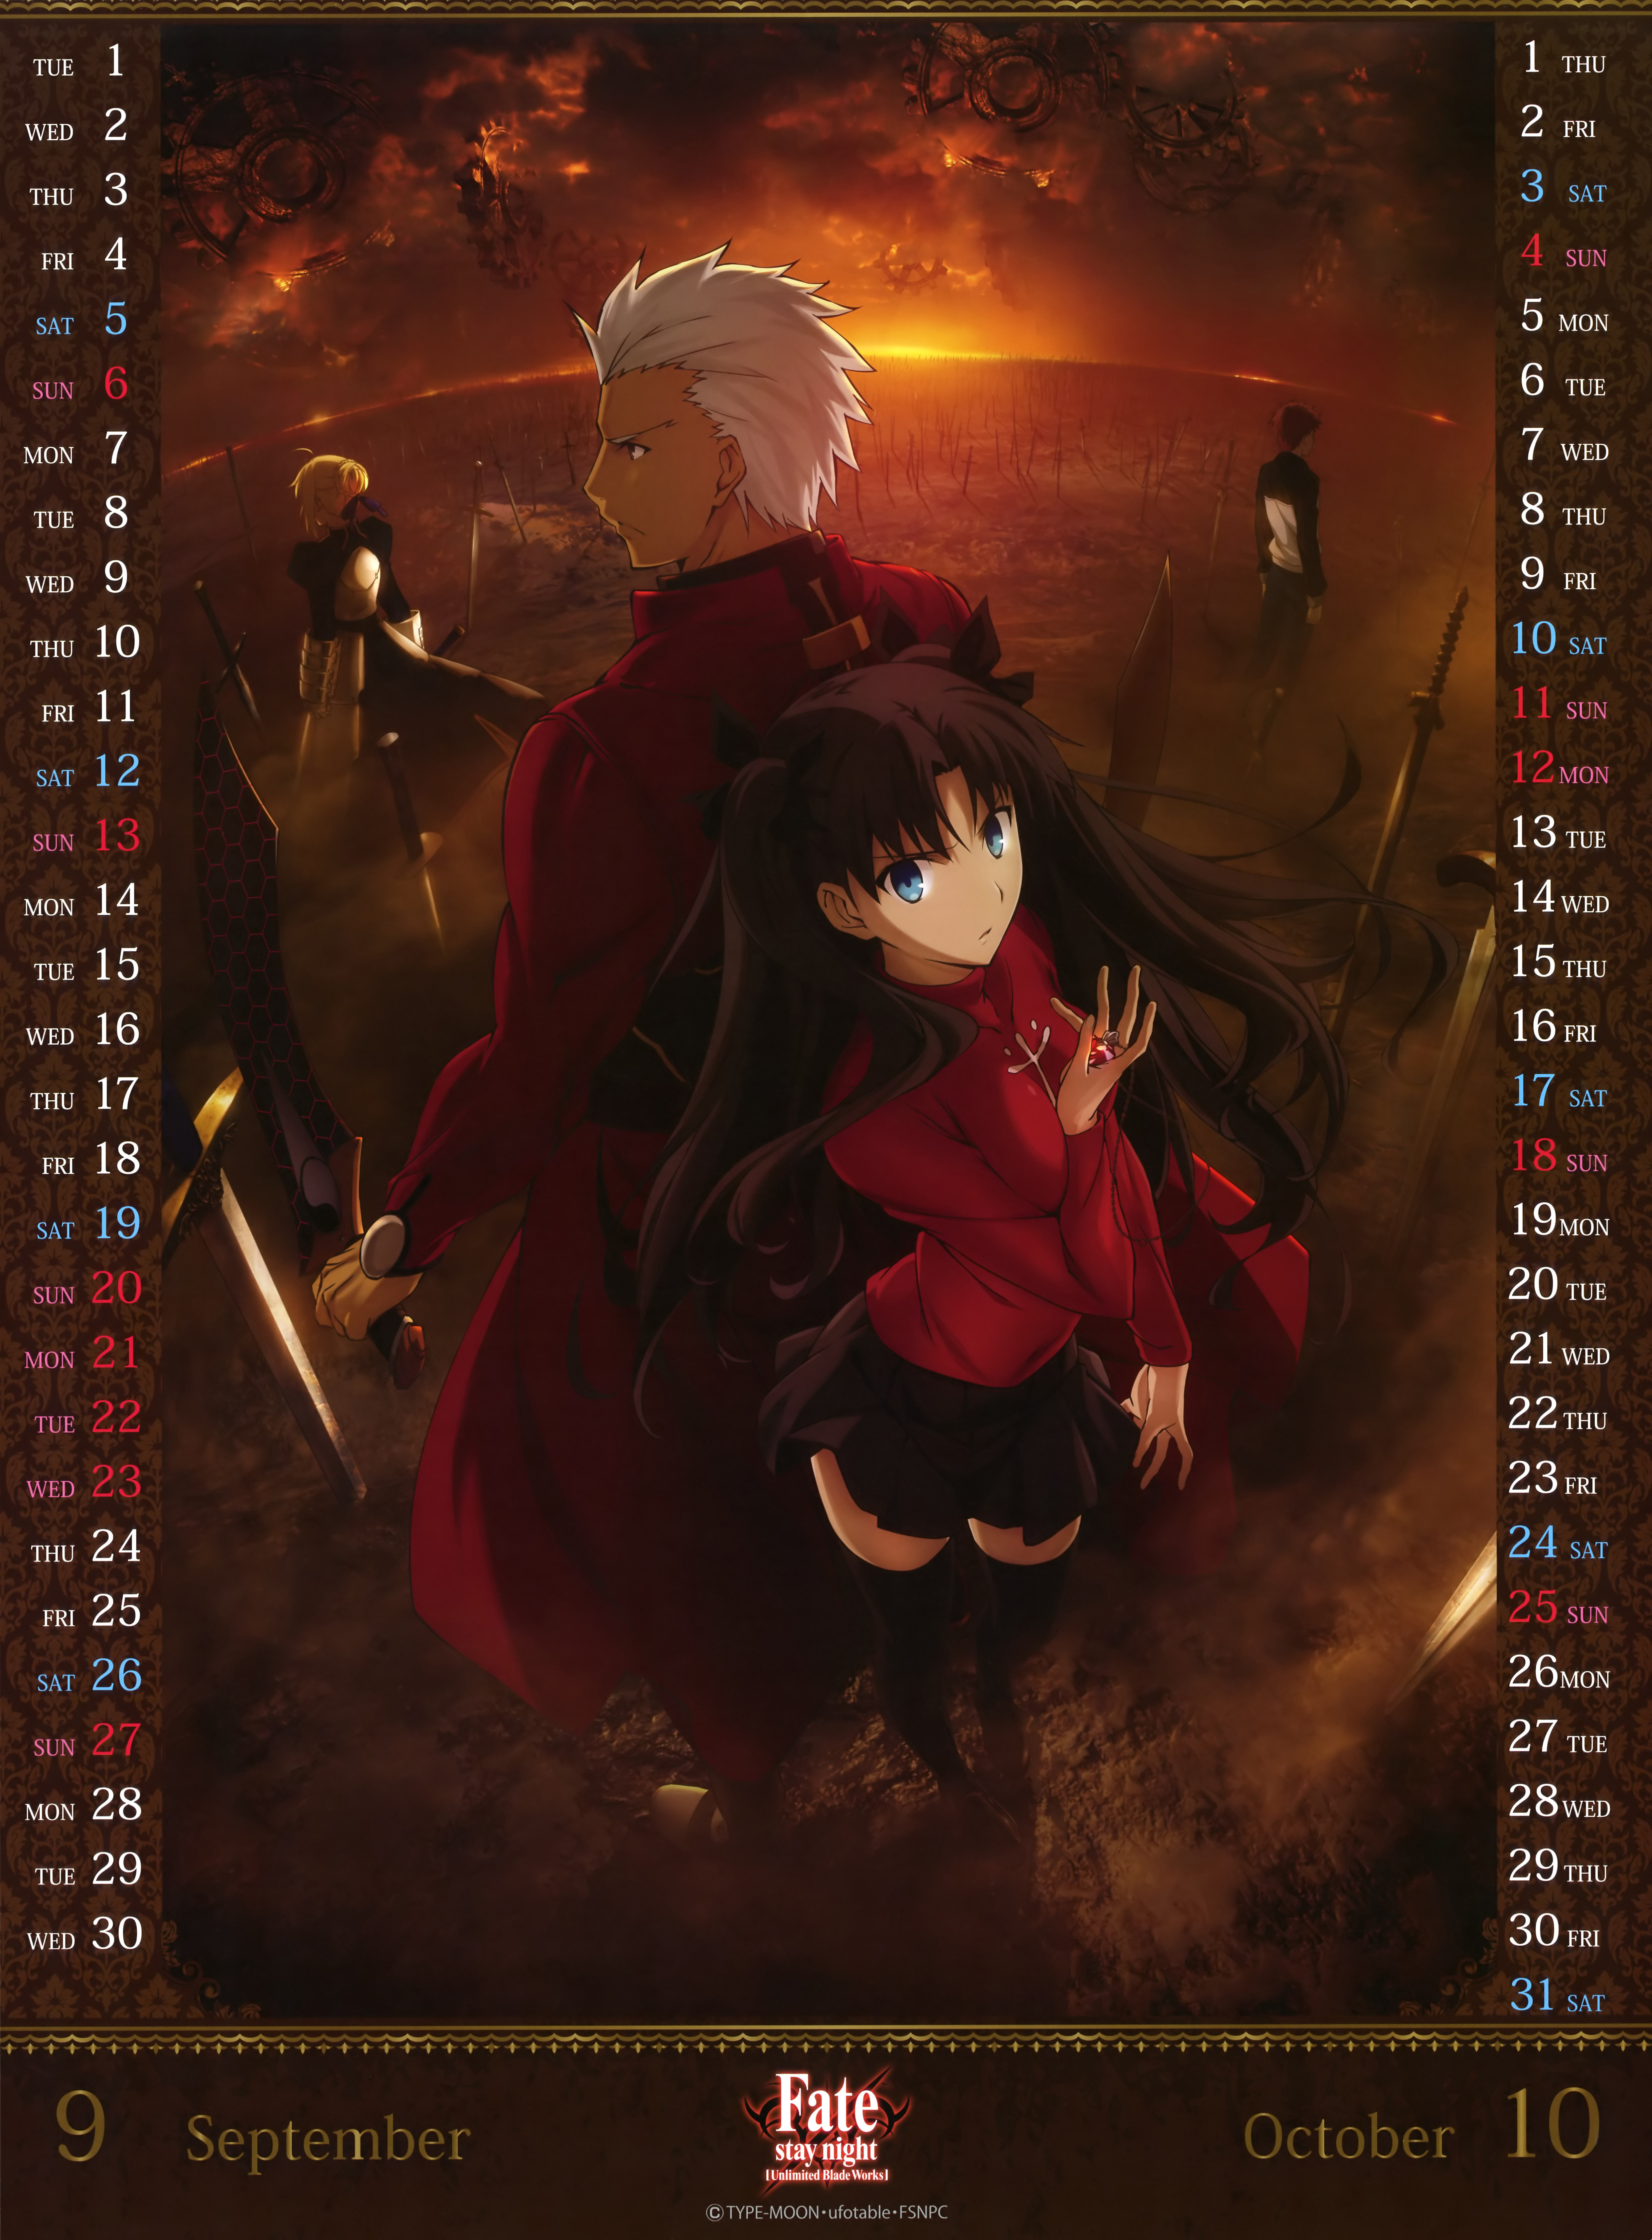 Fate-stay-night--Unlimited-Blade-Works-2015-Anime-Calendar-Image-5